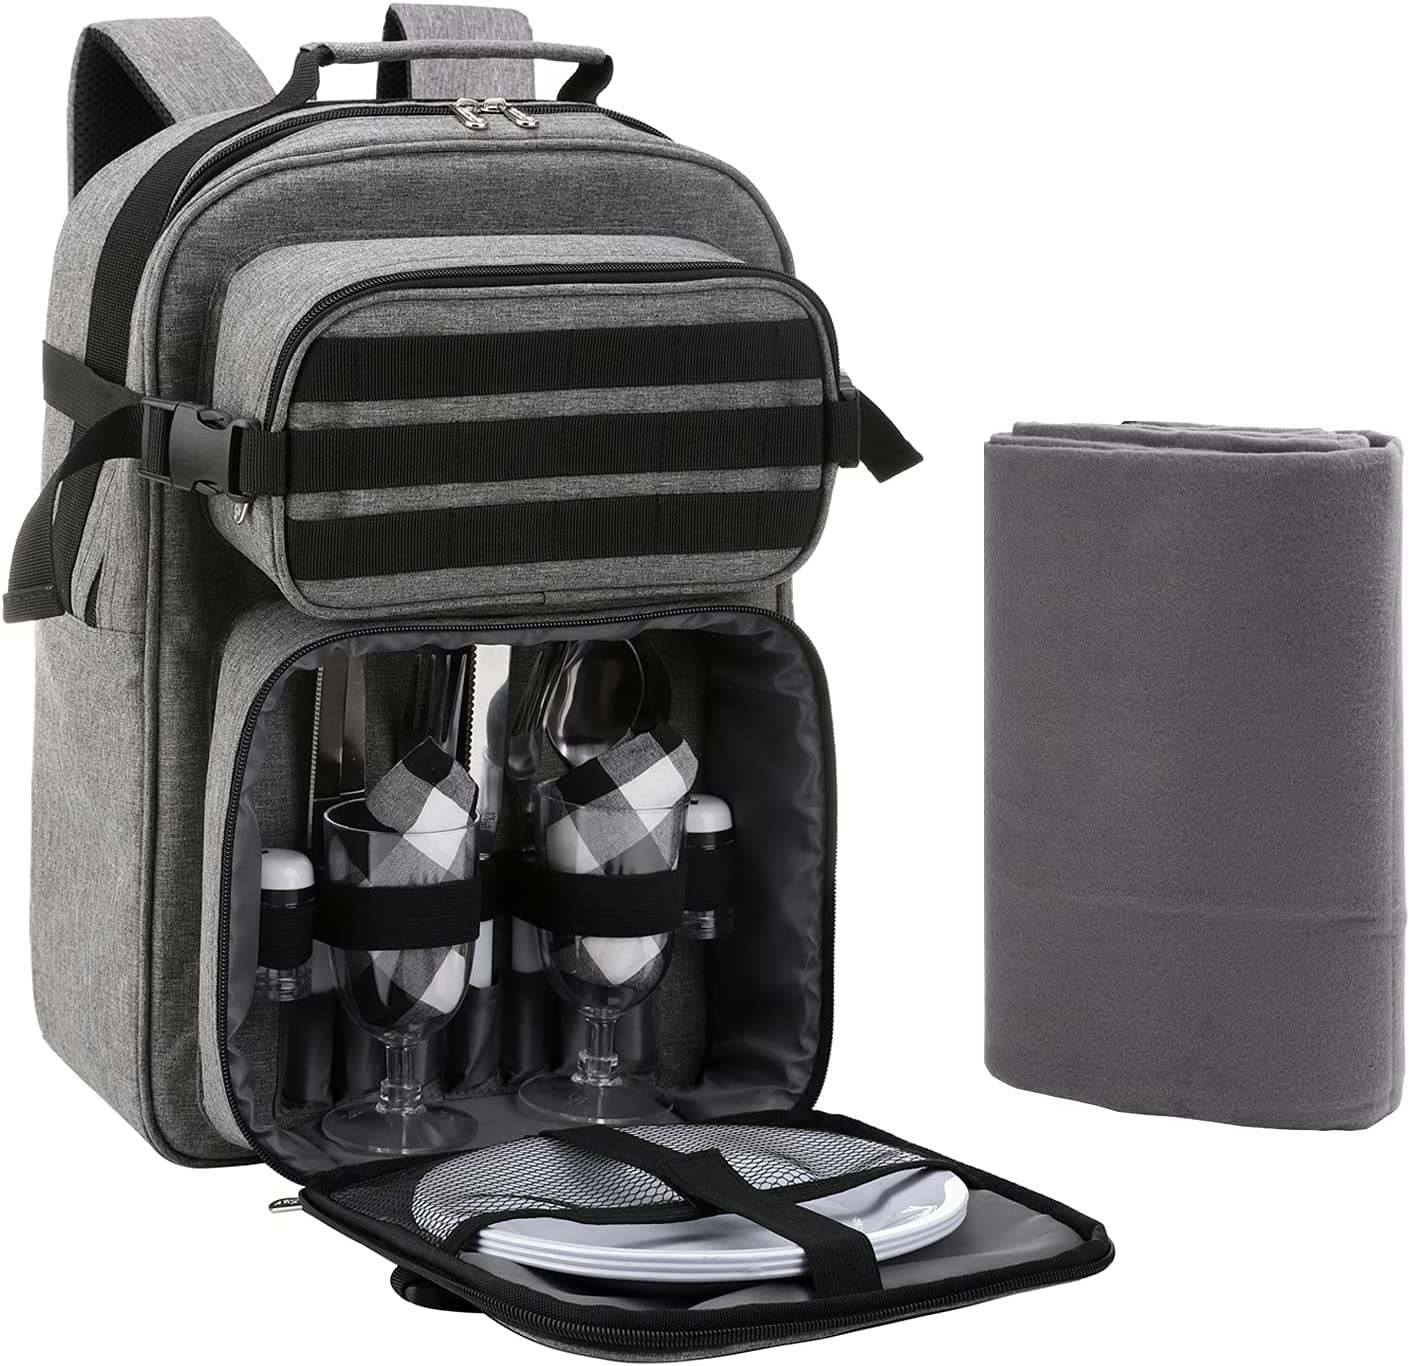 Vogano Picnic Backpack Cooler Bag for 2 Person Set with Insulated Compartment,Fleece Blanket,Cutlery Set,for Hiking Camping Tactical Outdoor : Patio, Lawn & Garden